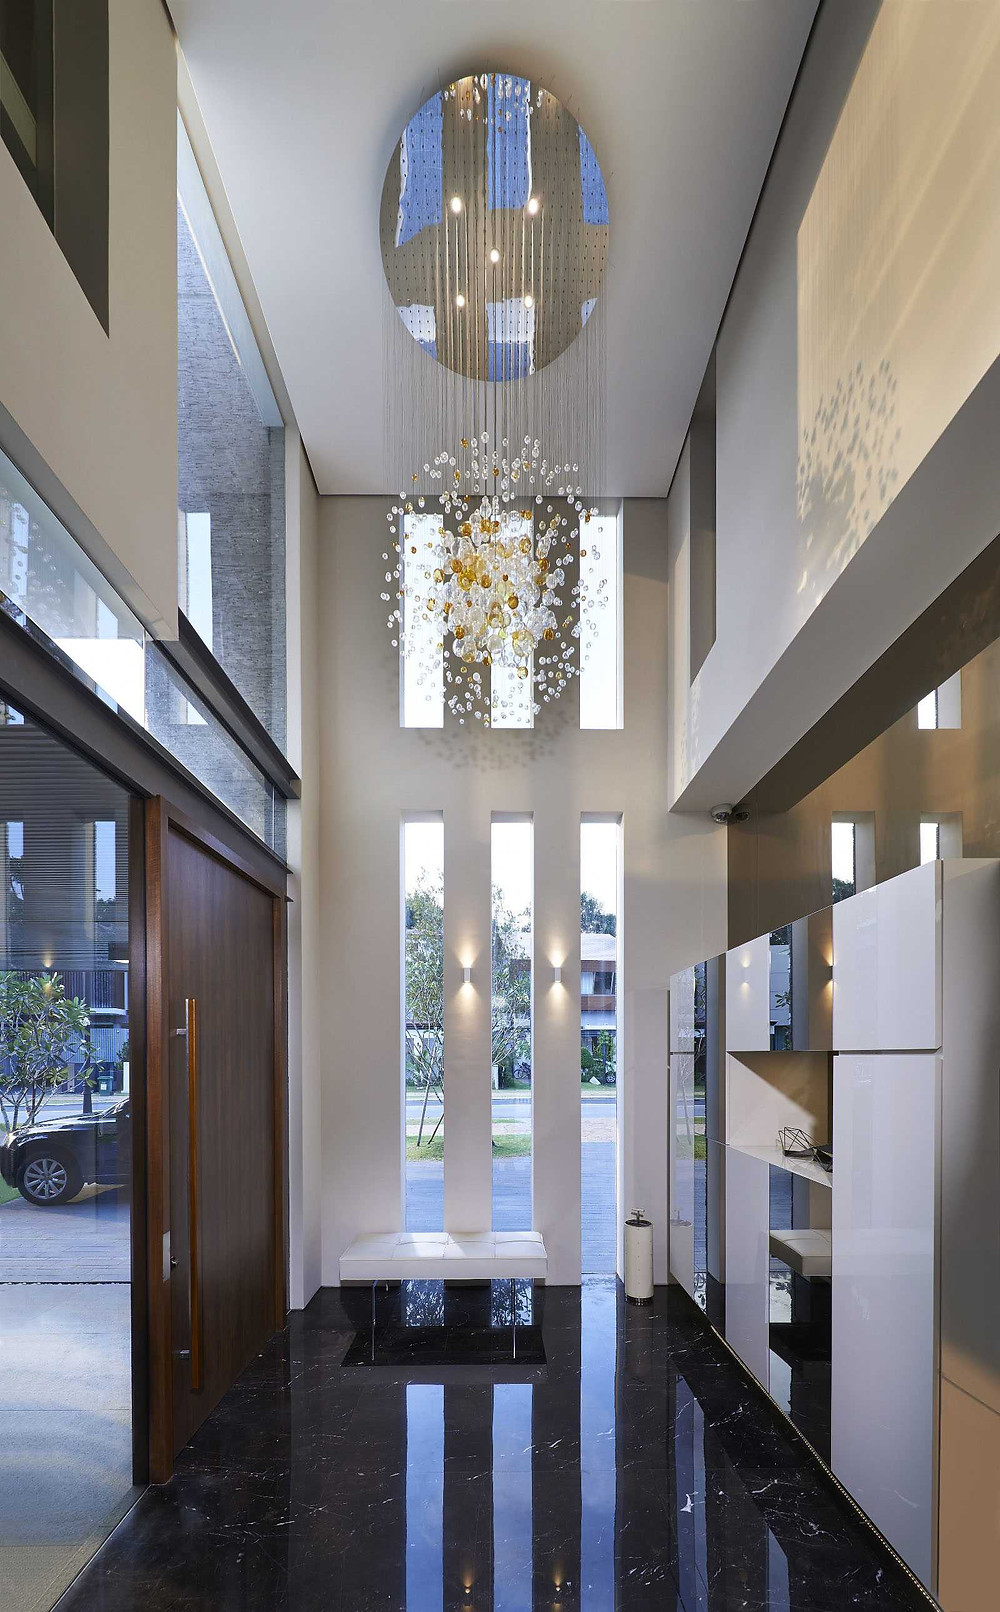 A stylish reception foyer with double-volume ceiling height